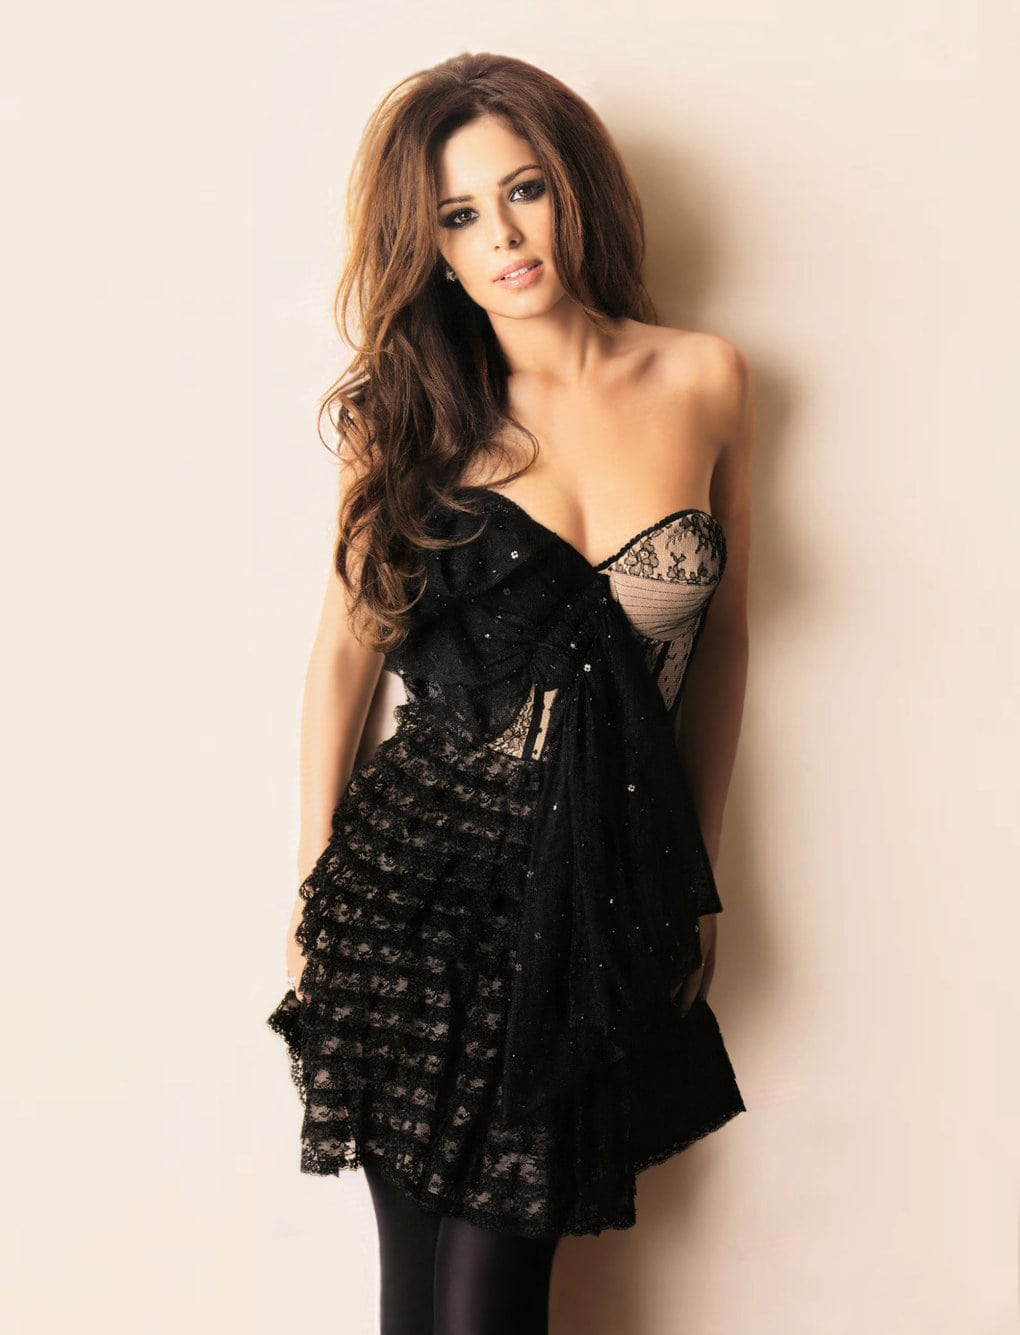 Cheryl Cole on Photoshoot